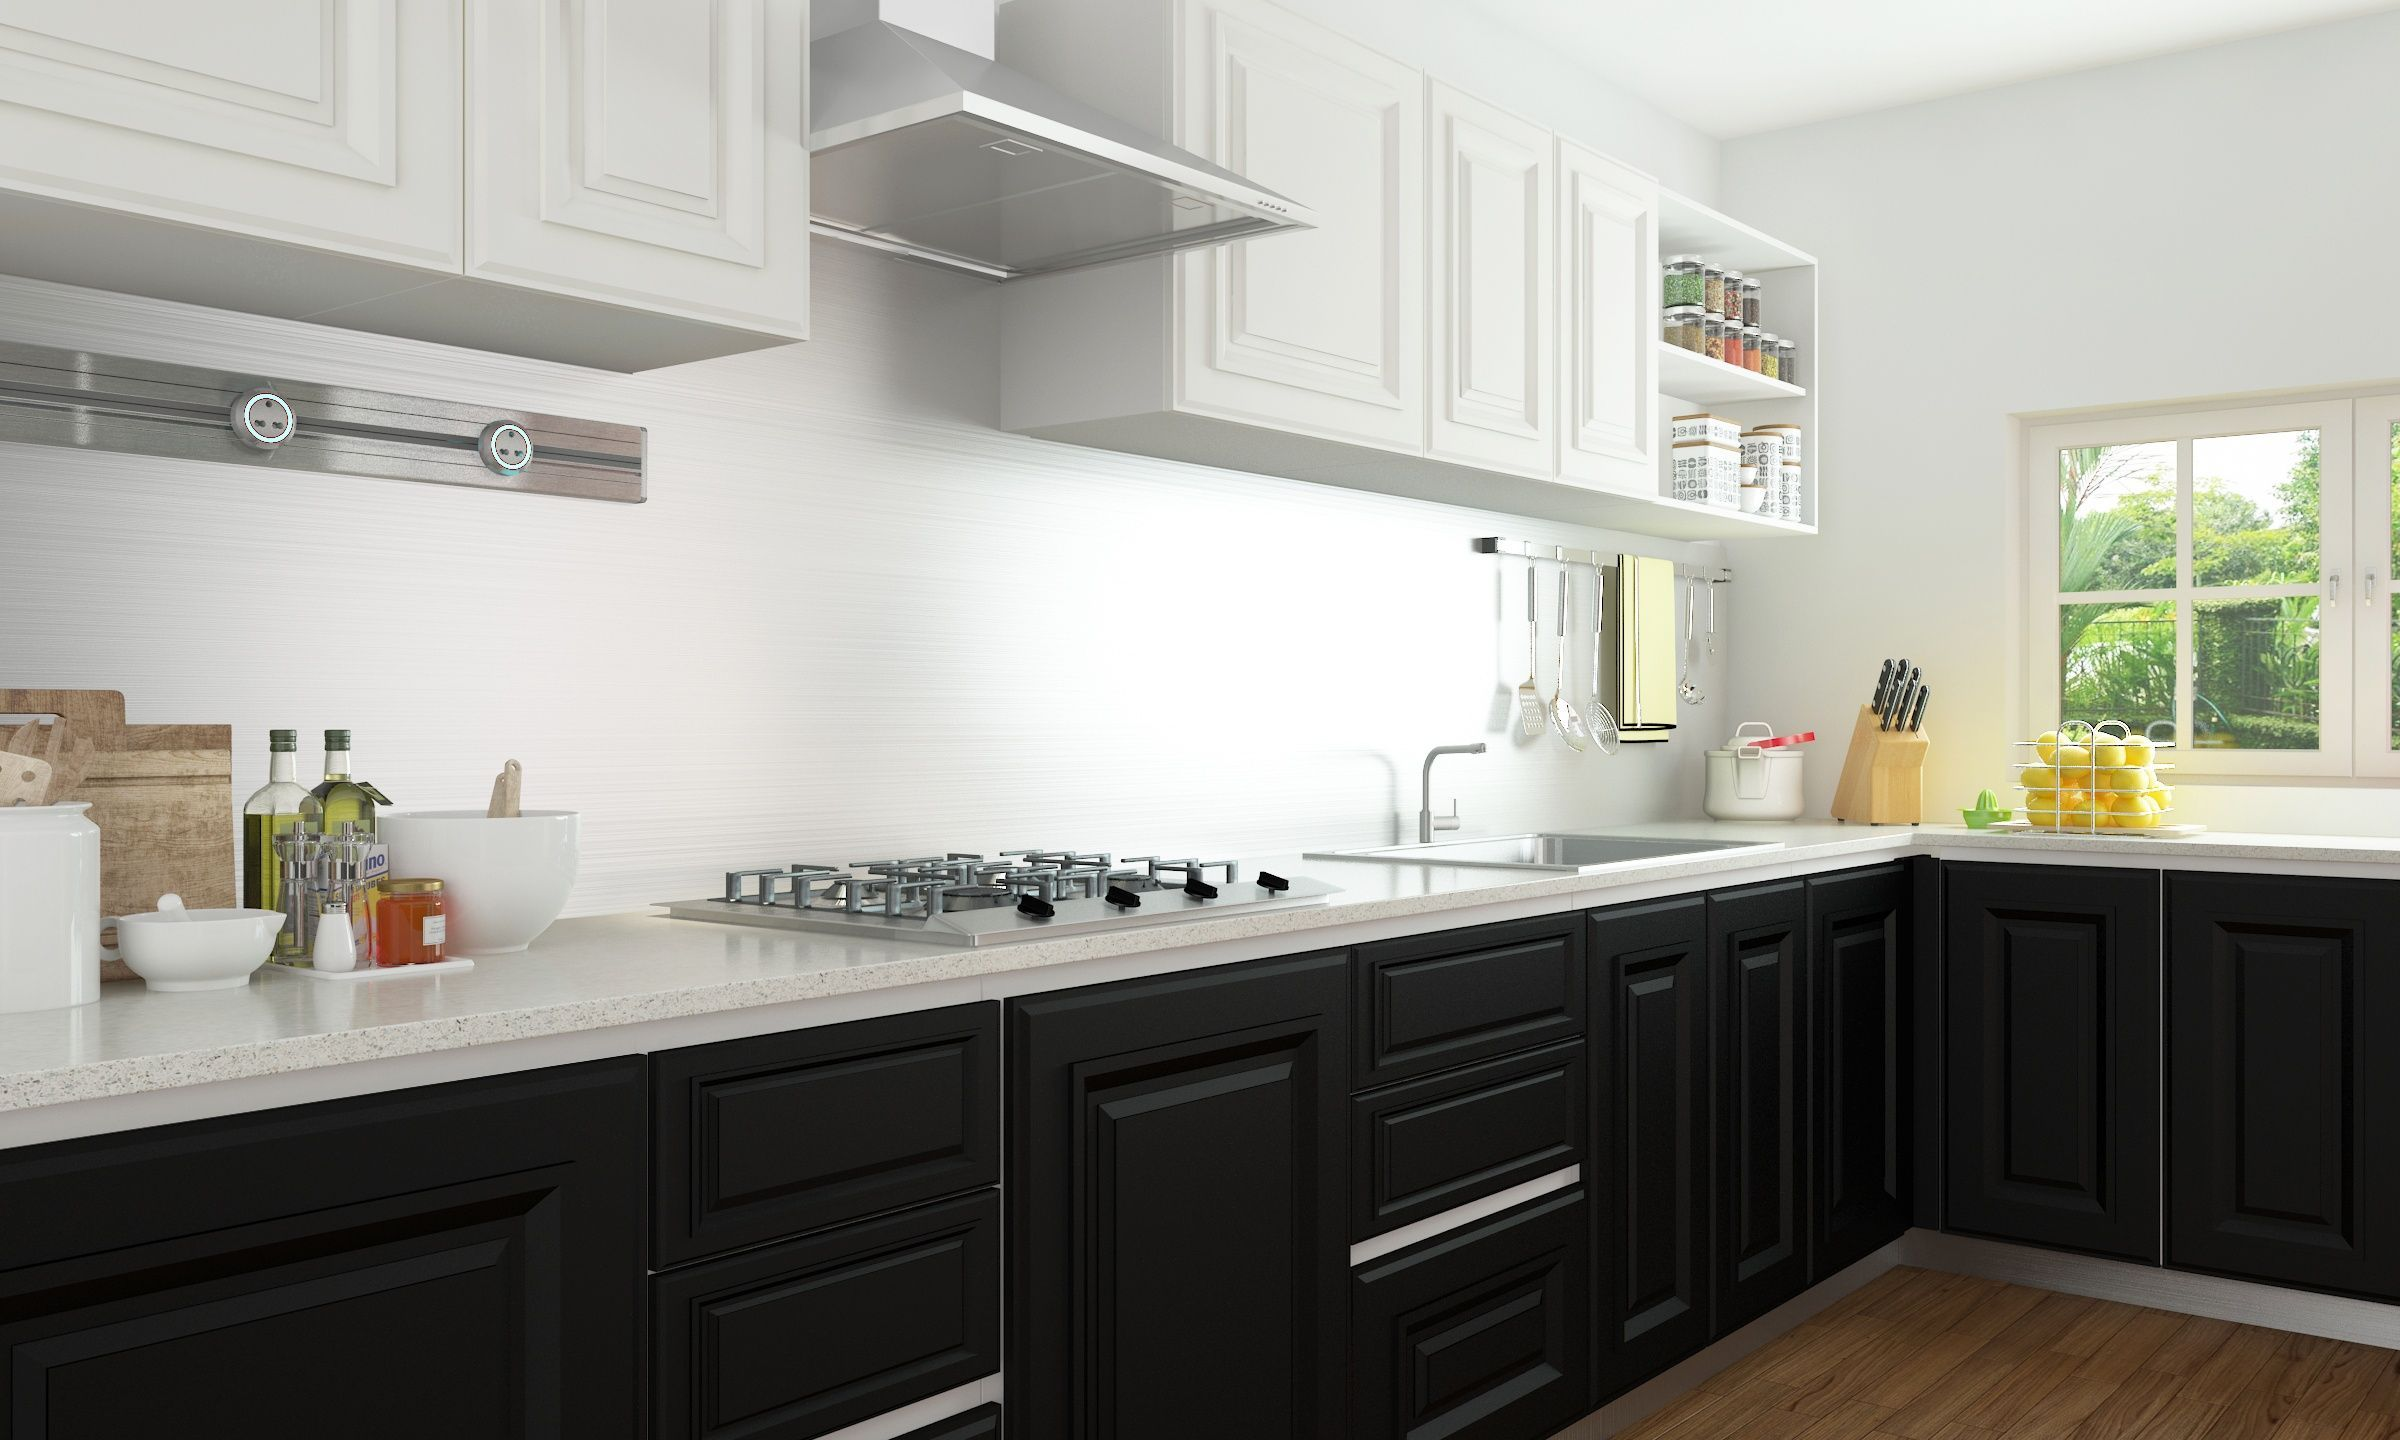 Renovating | Modular Kitchen Benefits for Homes in India